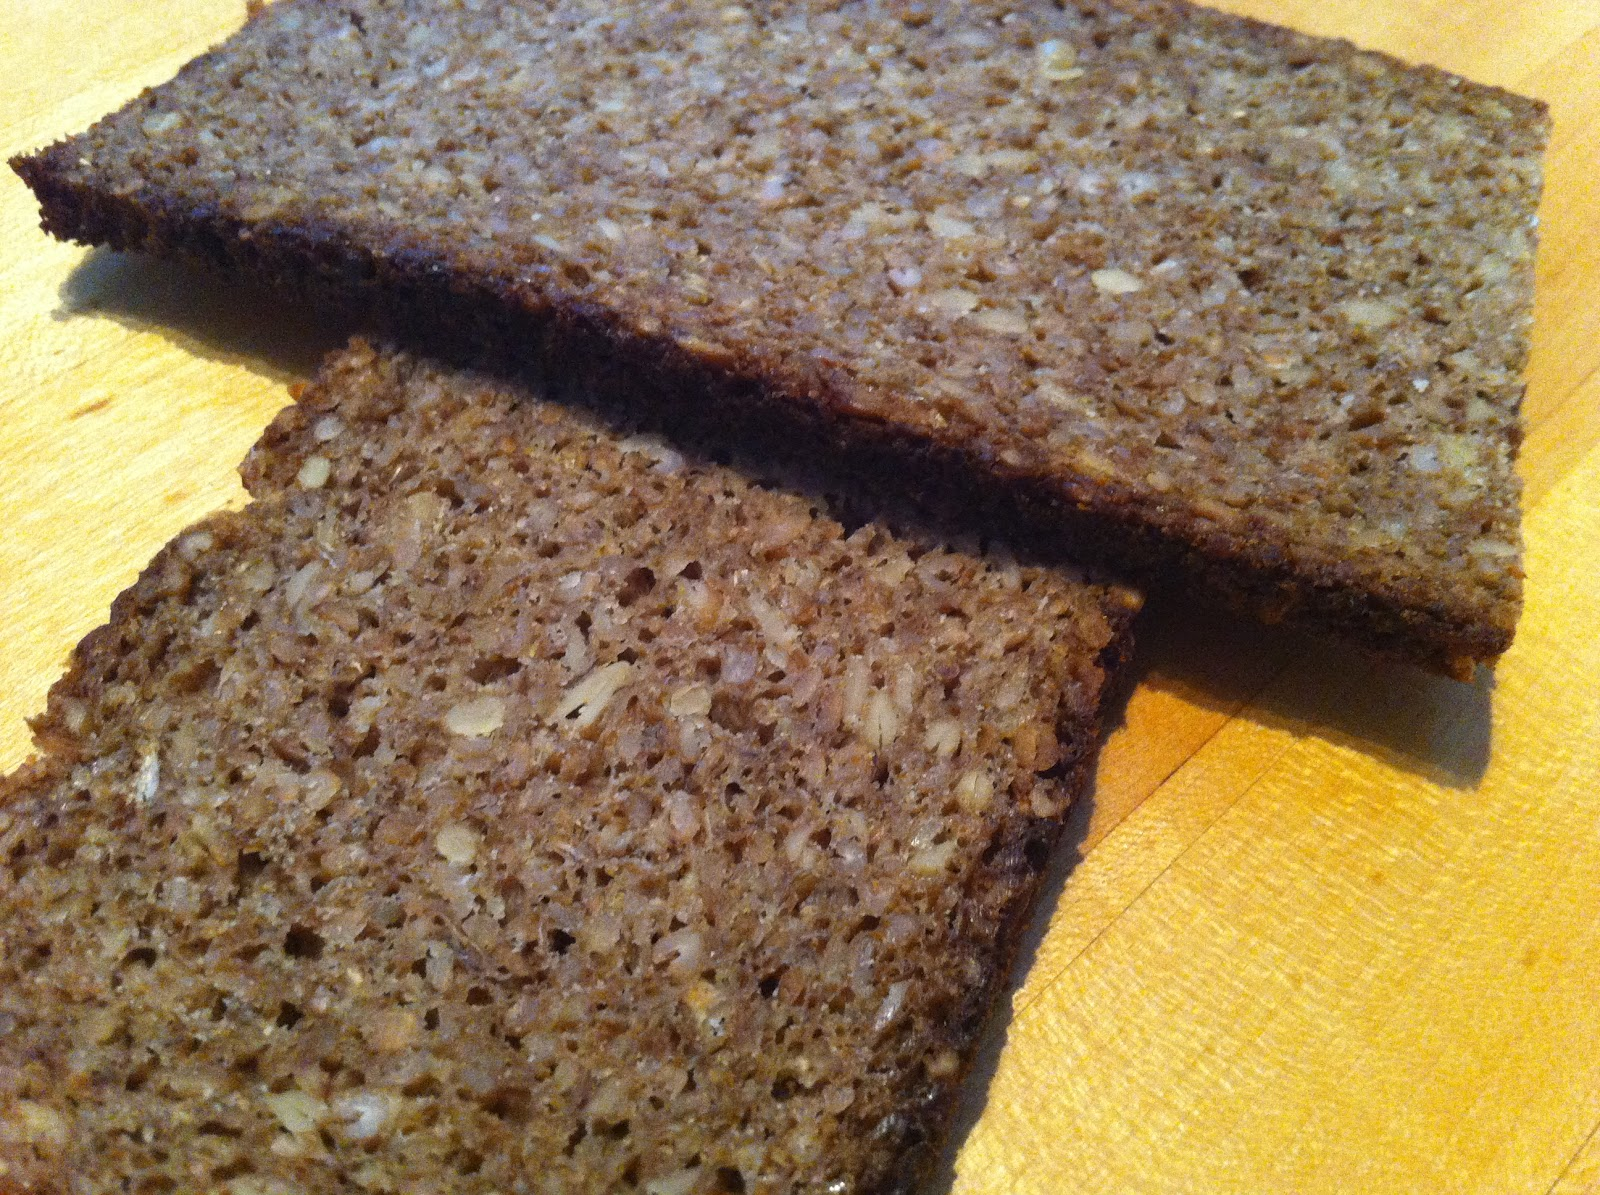 Deutsche Kuche Bread What 39s Good At Aldi Deutsche Kuche Sunflower Seed Bread